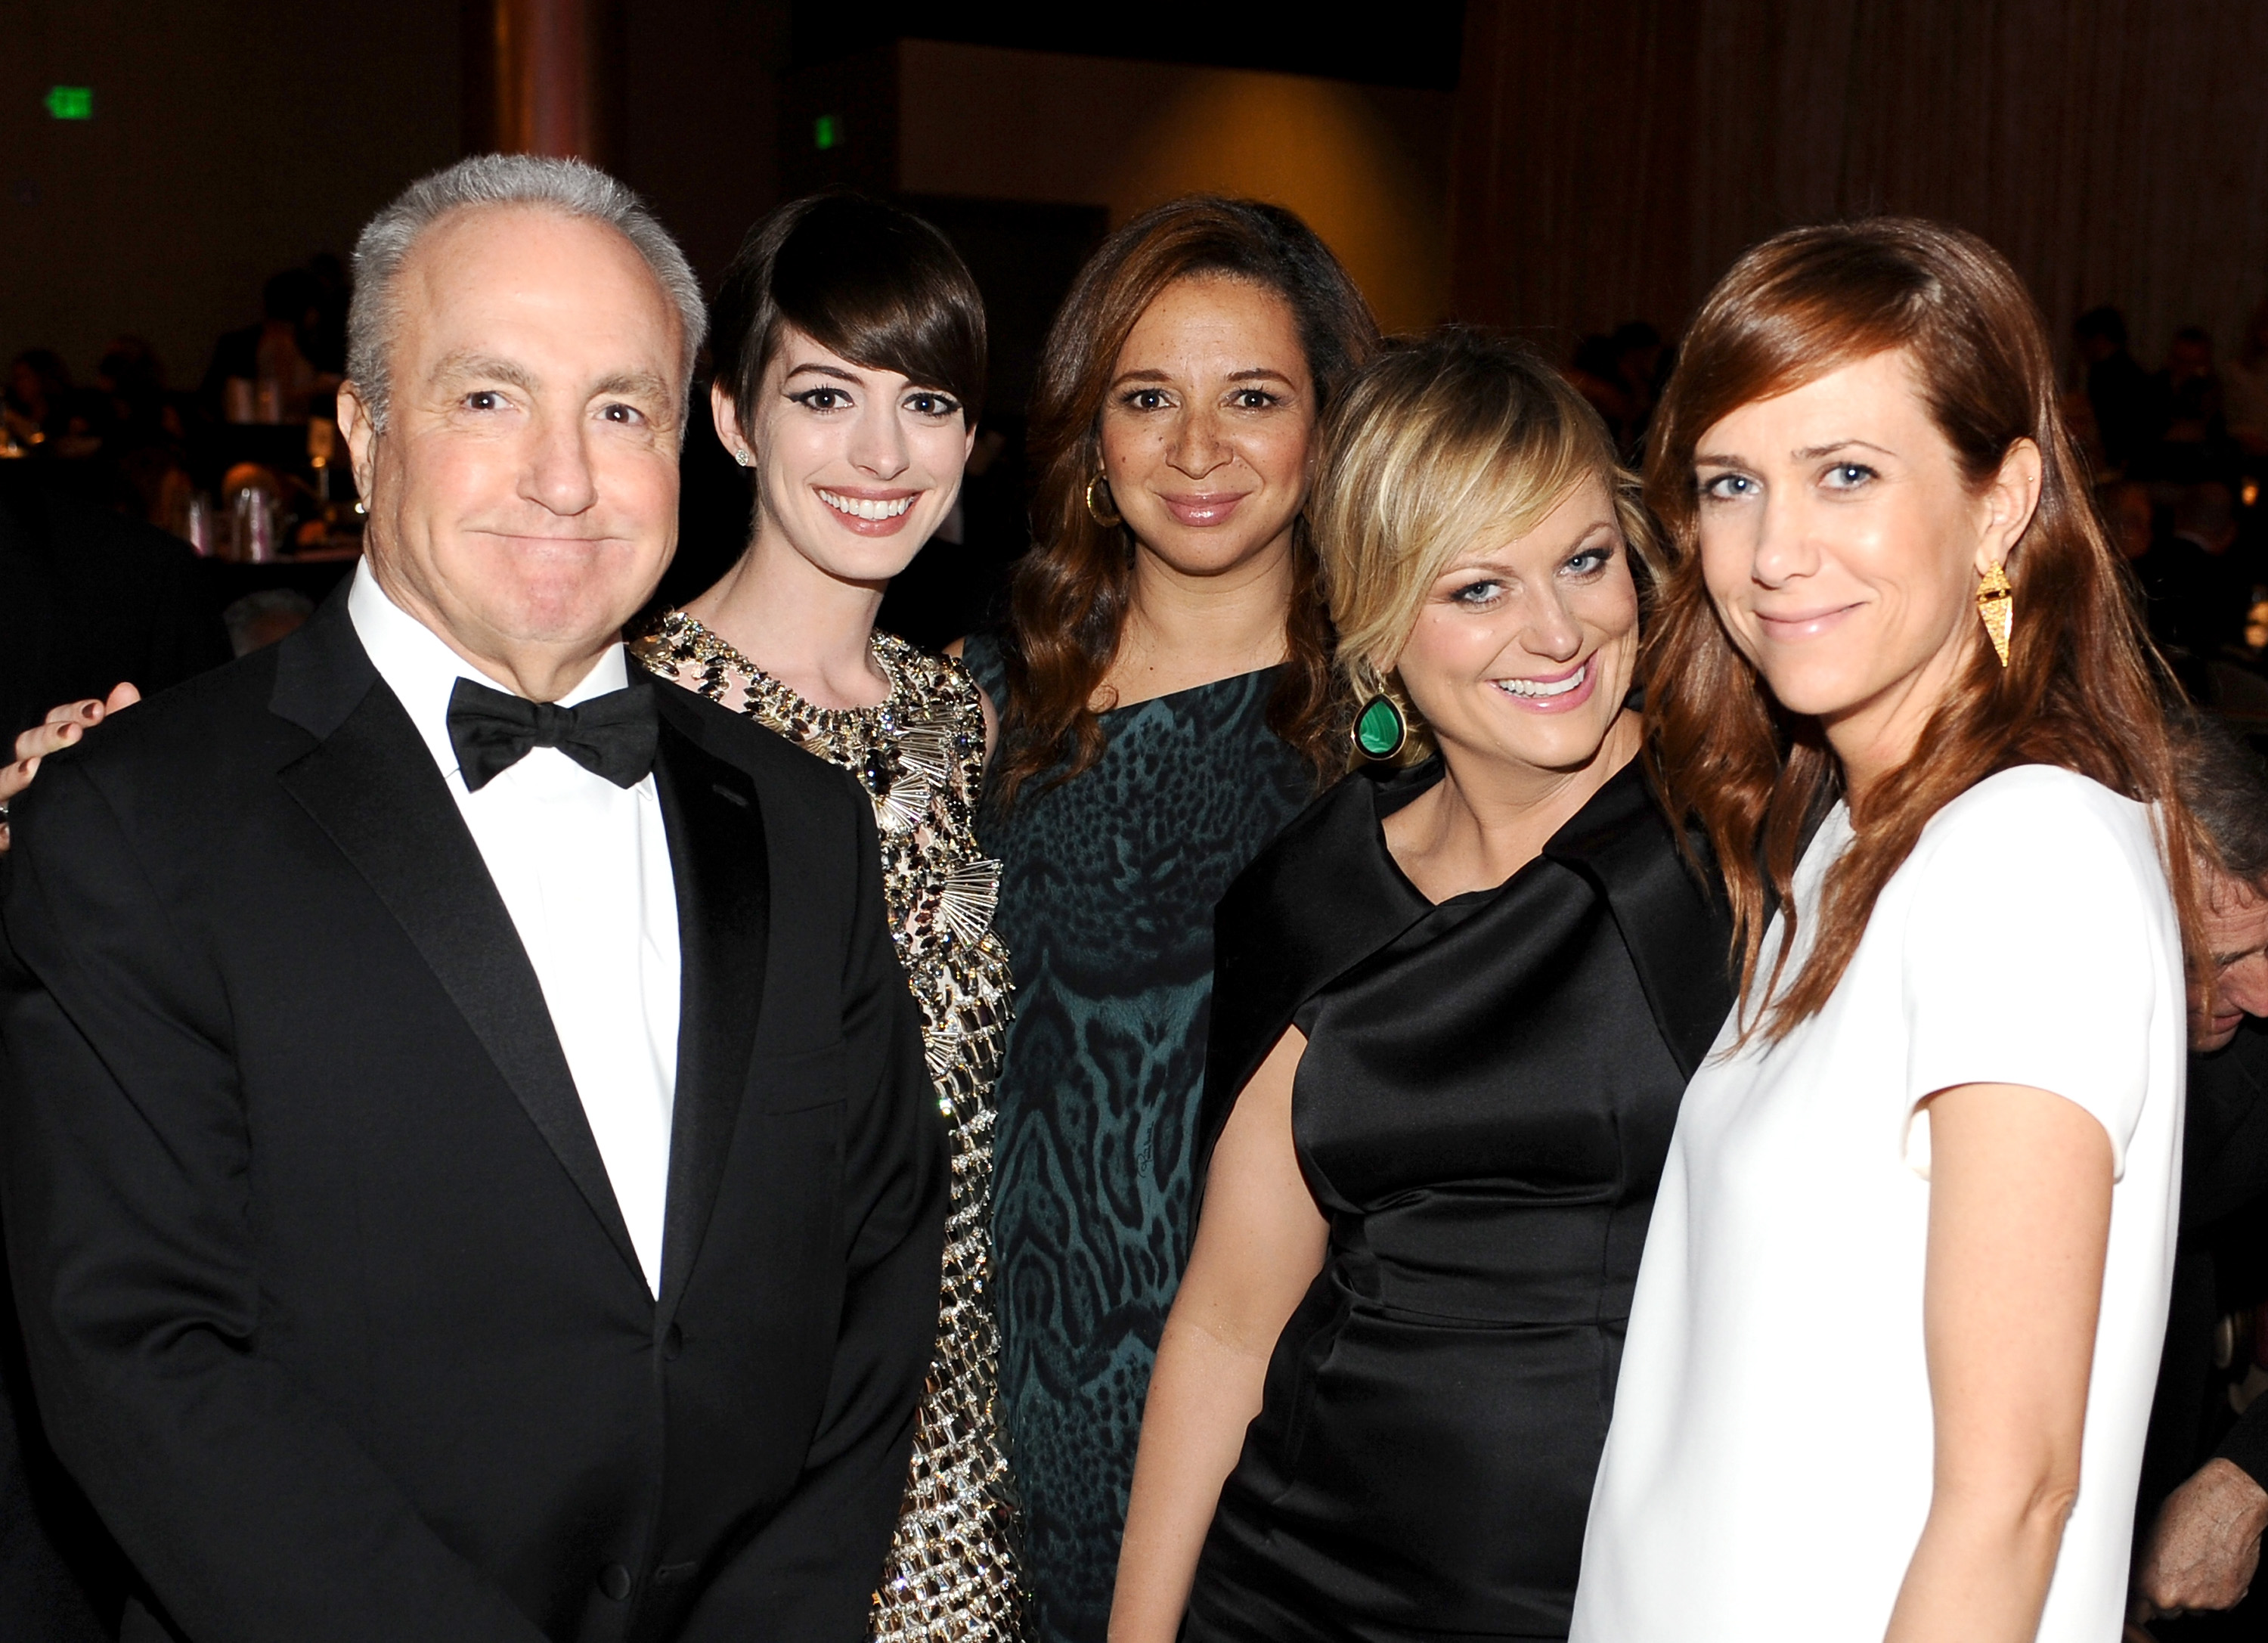 Lorne Michaels, Anne Hathaway, Maya Rudolph, Amy Poehler, and Kristen Wiig posed together during the award show.